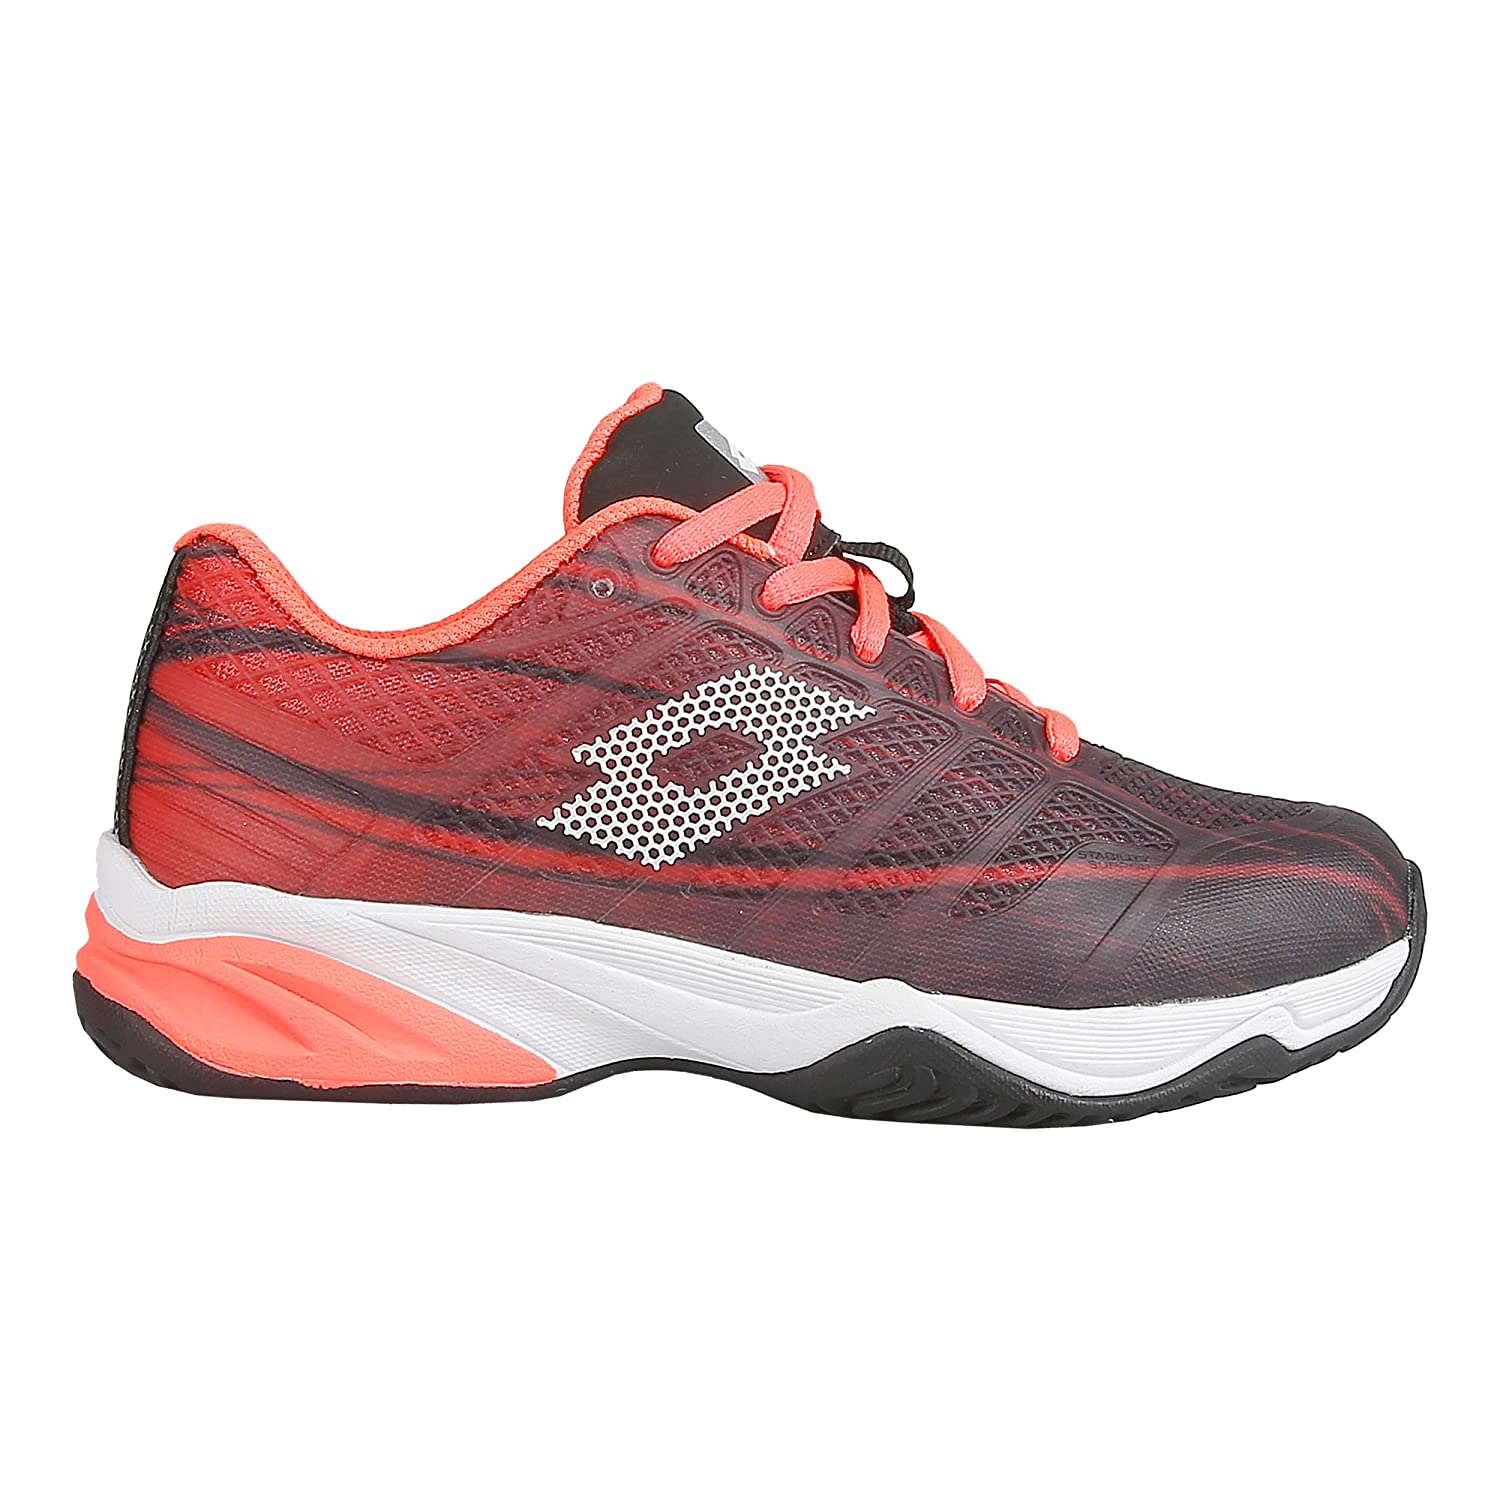 Lotto Zapatilla Tenis Padel Mirage 300 ALR Junior. 210746. Talla ...